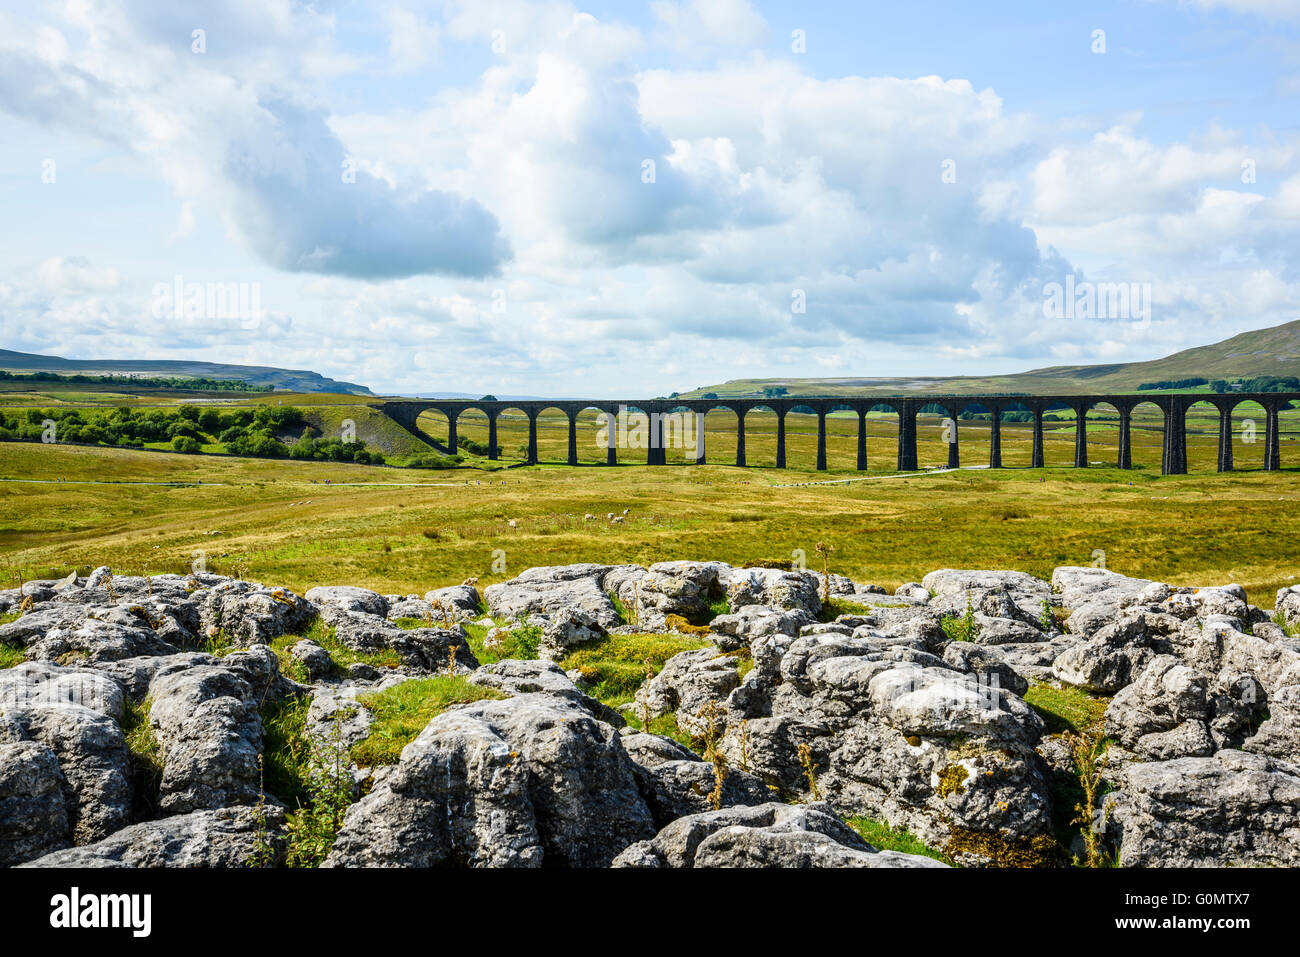 Limestone outcrops and Ribblehead Viaduct in the Yorkshire Dales - Stock Image